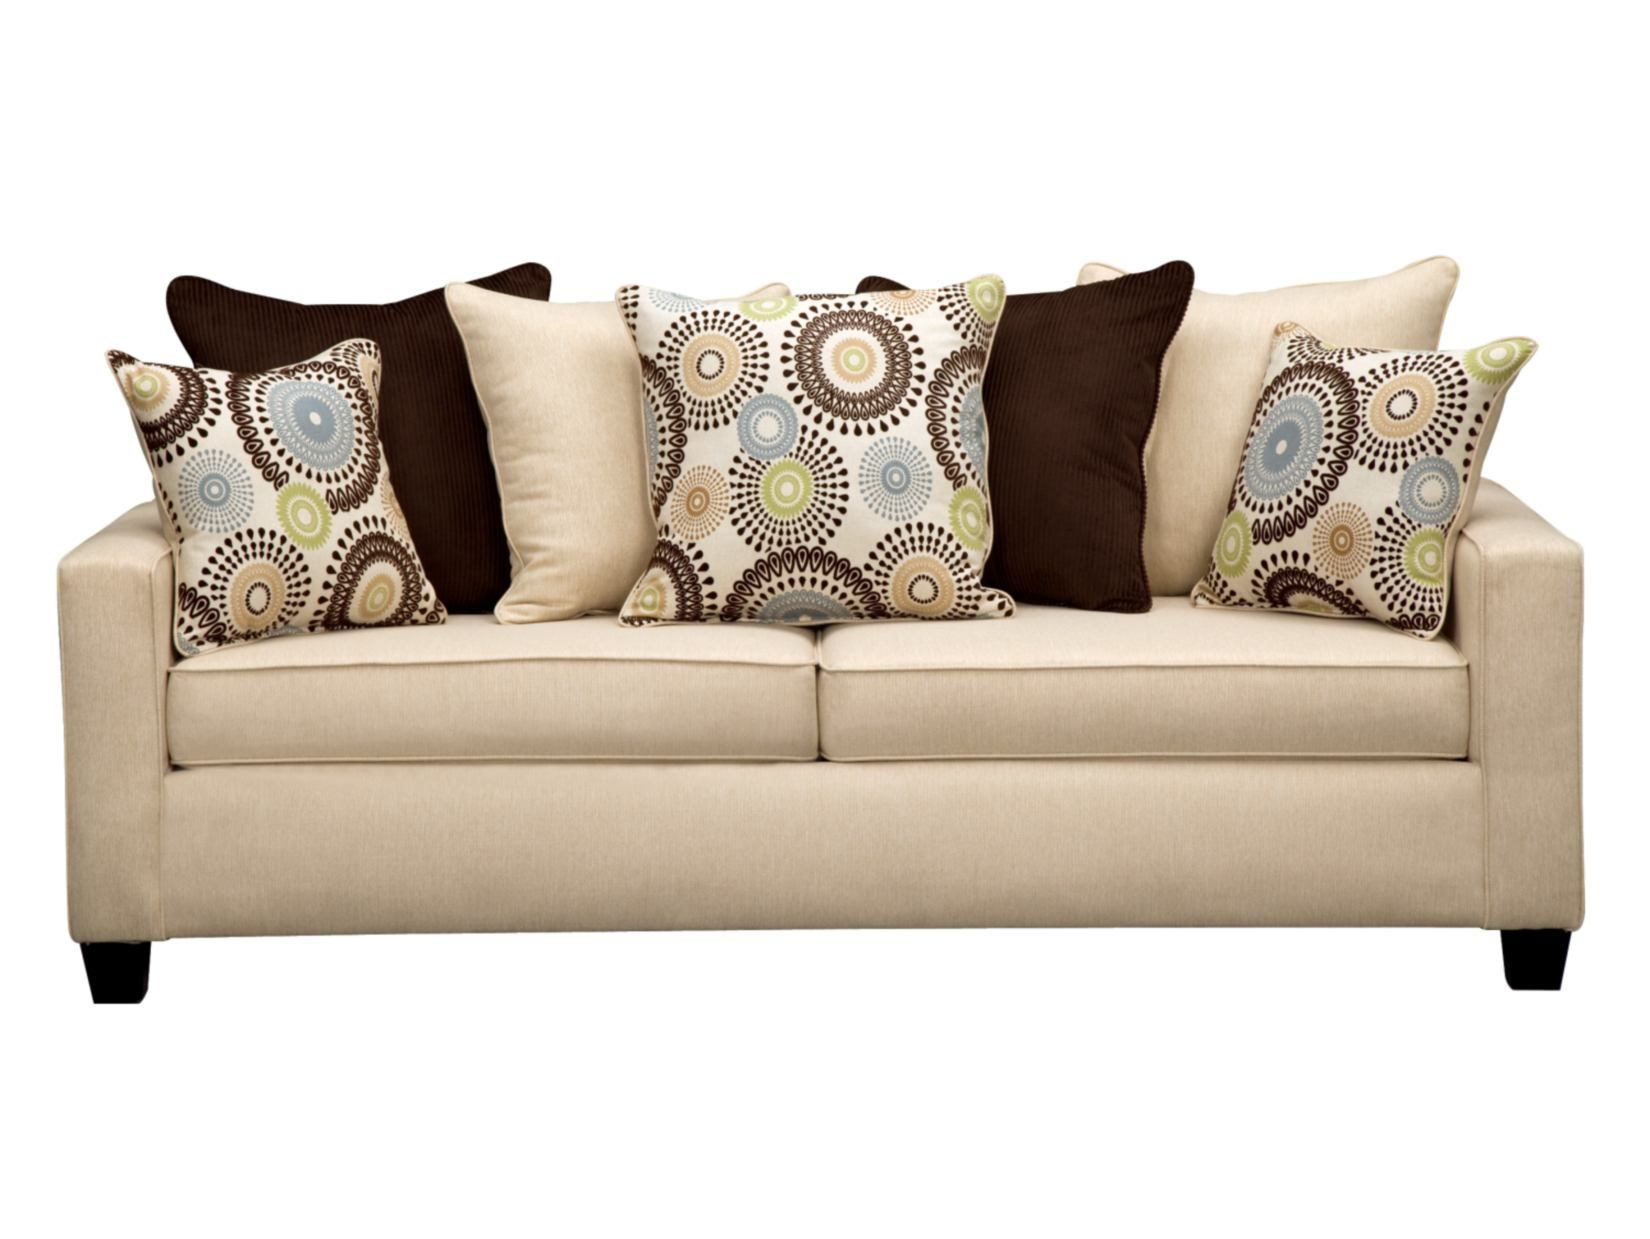 Value City Furniture Living Room Stoked Cream Sofa Value City Furniture Furniture And Decor For